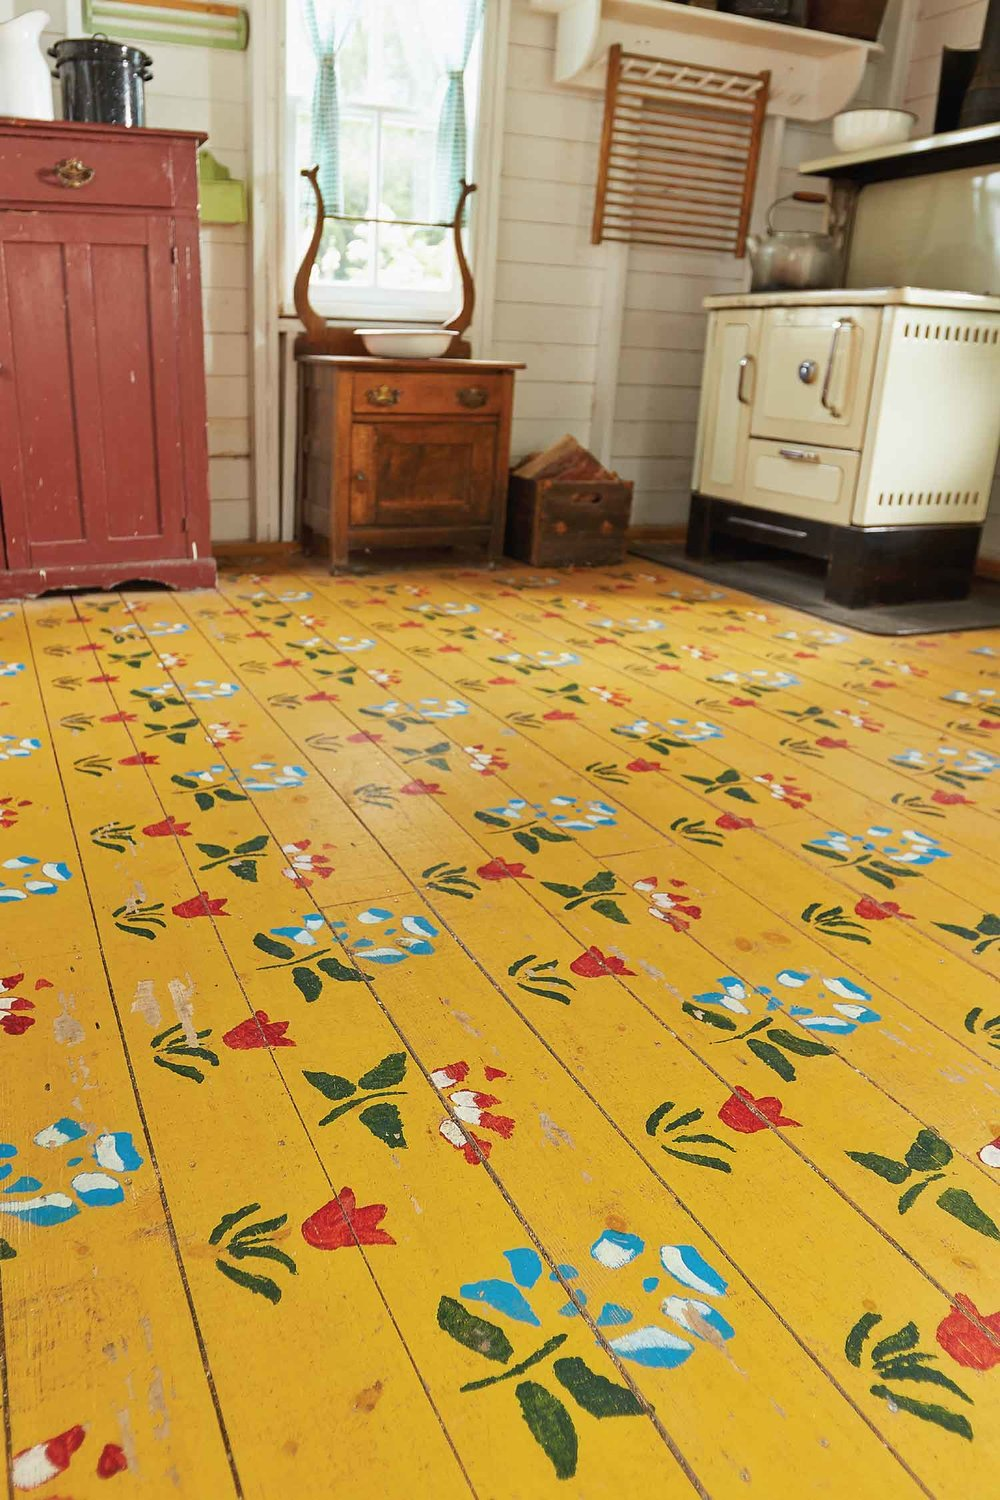 A replica of the Sommerfeld housebarn floor pattern, at the Mennonite Heritage Village, Steinbach, Manitoba, handpainted by M. Krahn, 2010.